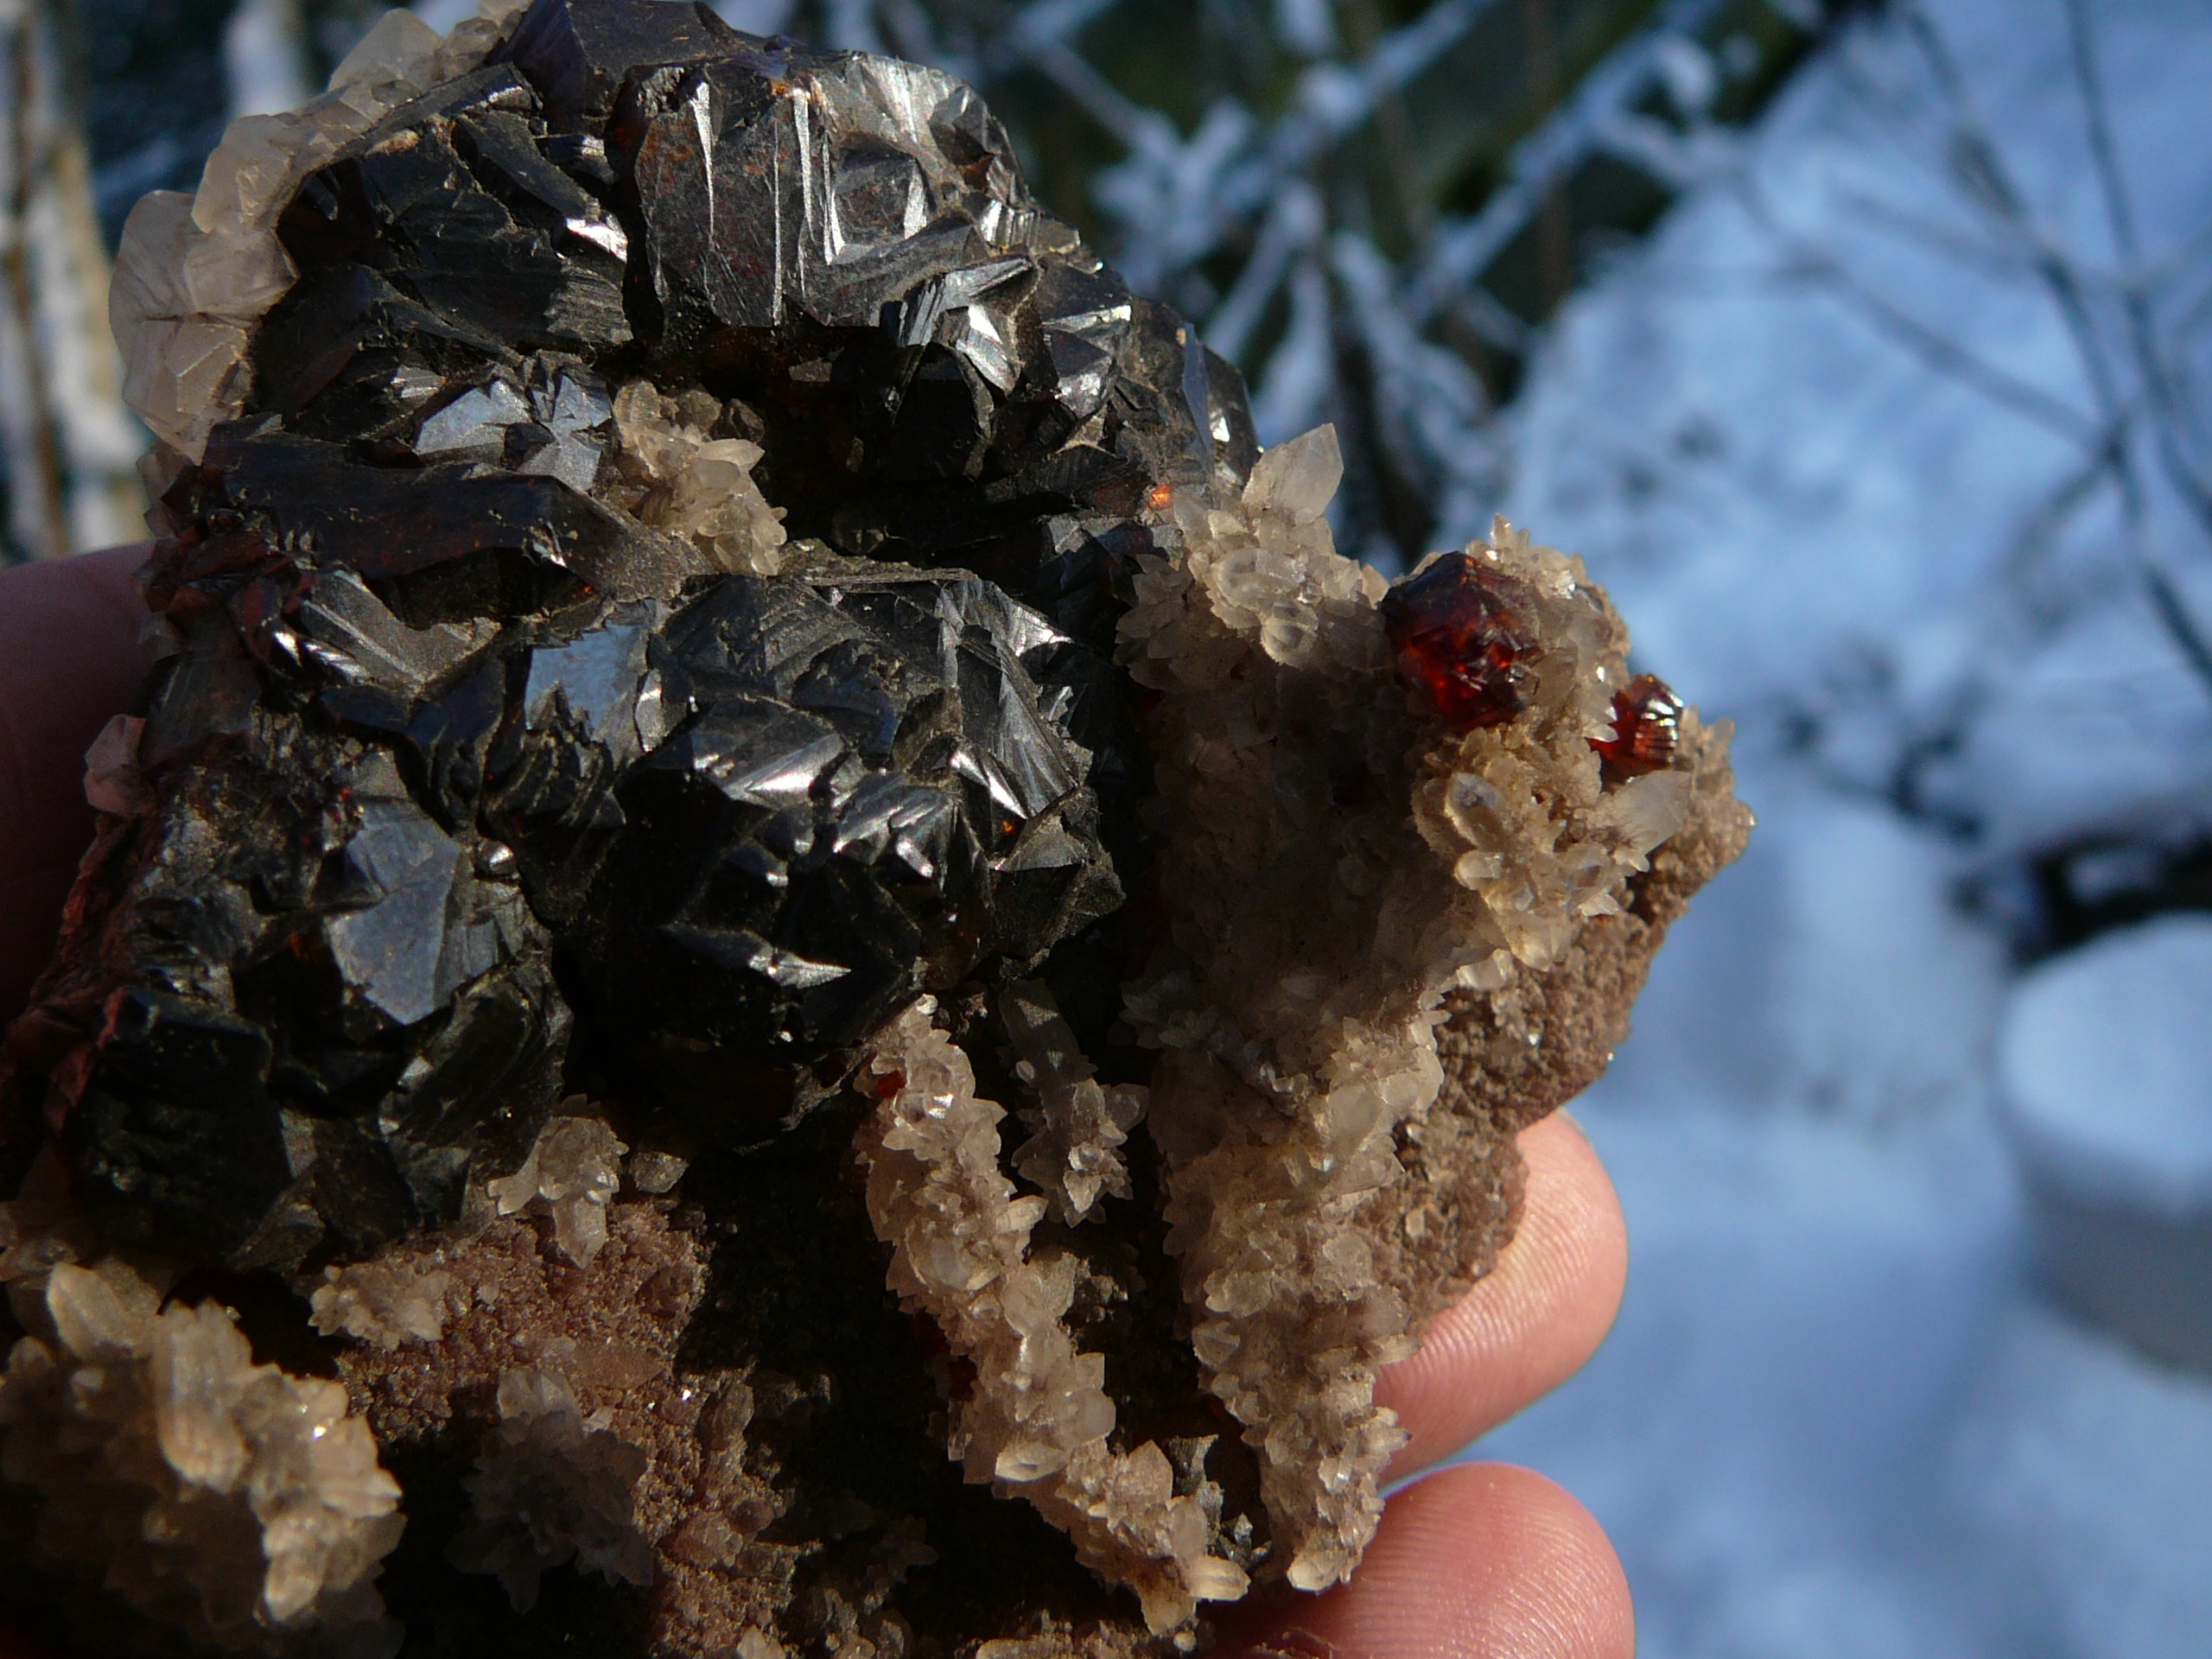 Honey to chocolate brown sphalerite crystals